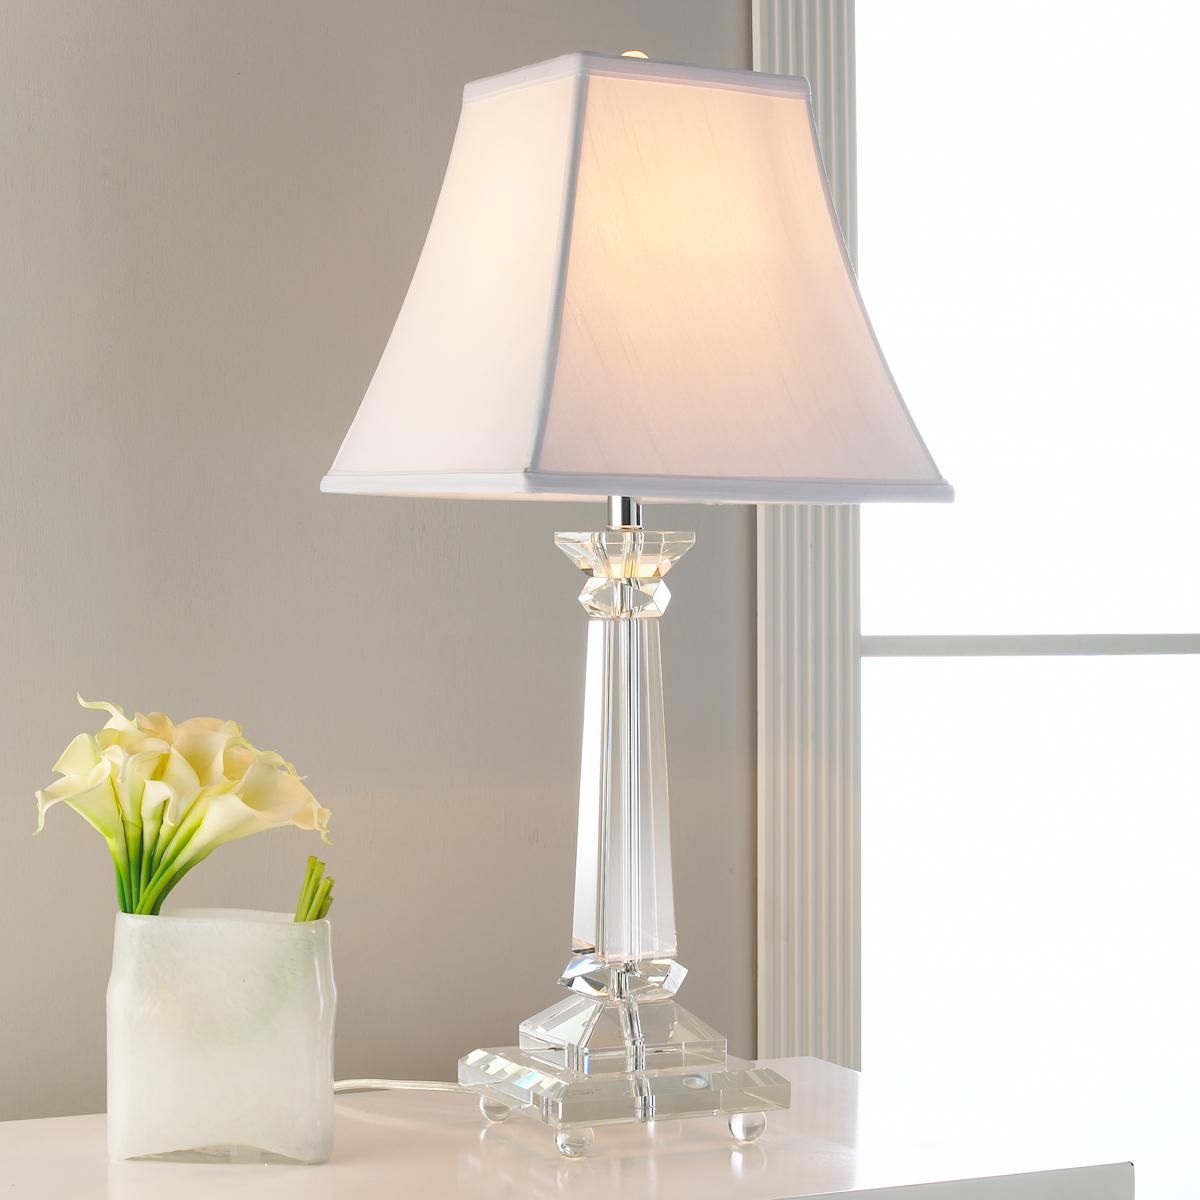 Lovely Tapered Square Crystal Column Table Lamp A Refreshing Crystal Lamp That  Goes In Every Room!